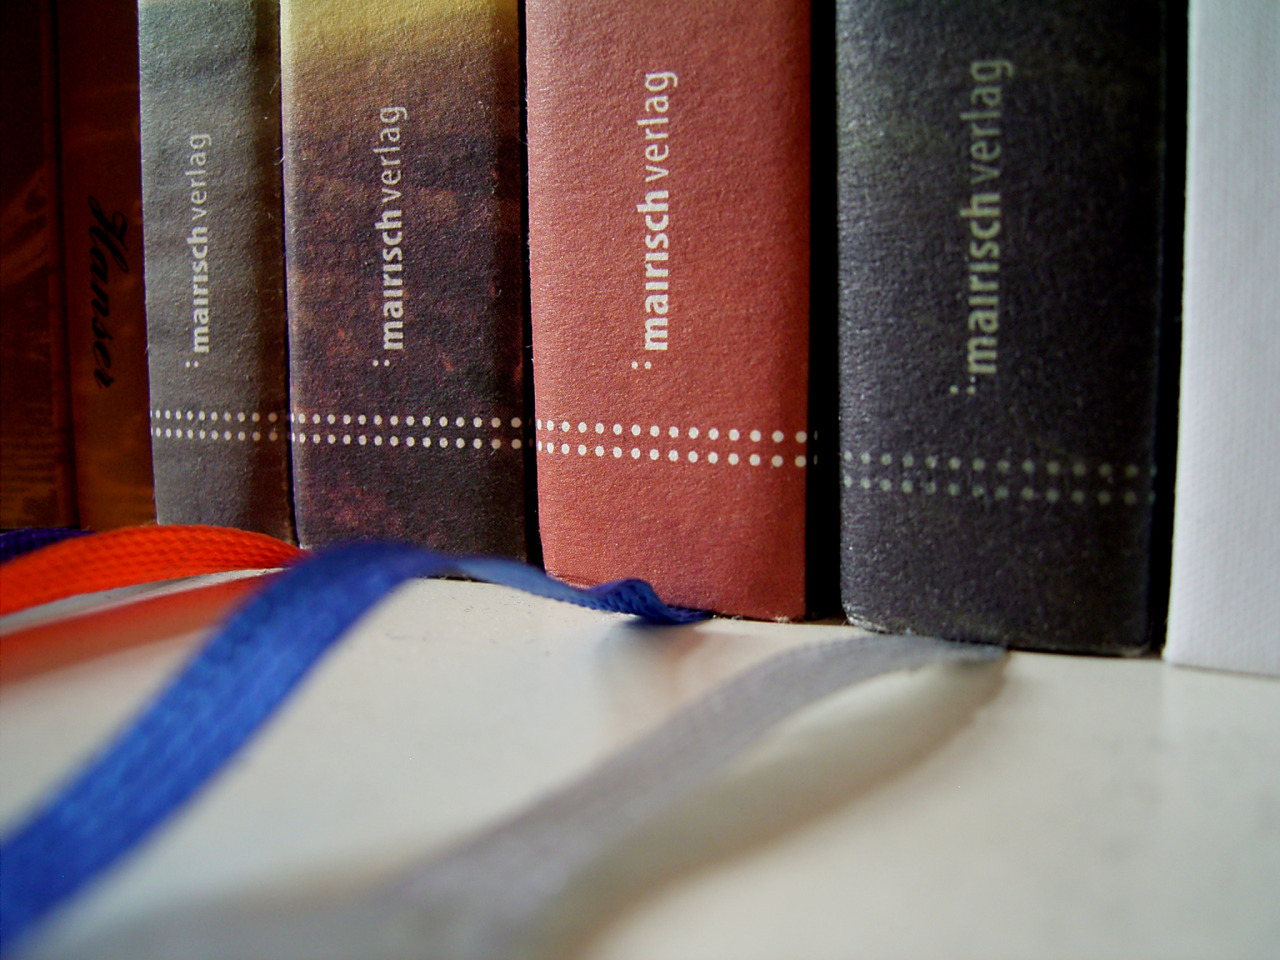 Mairisch Verlag bookspines and colourful bookmarks (mairisch is an independent publishing house based in Hamburg, Germany)